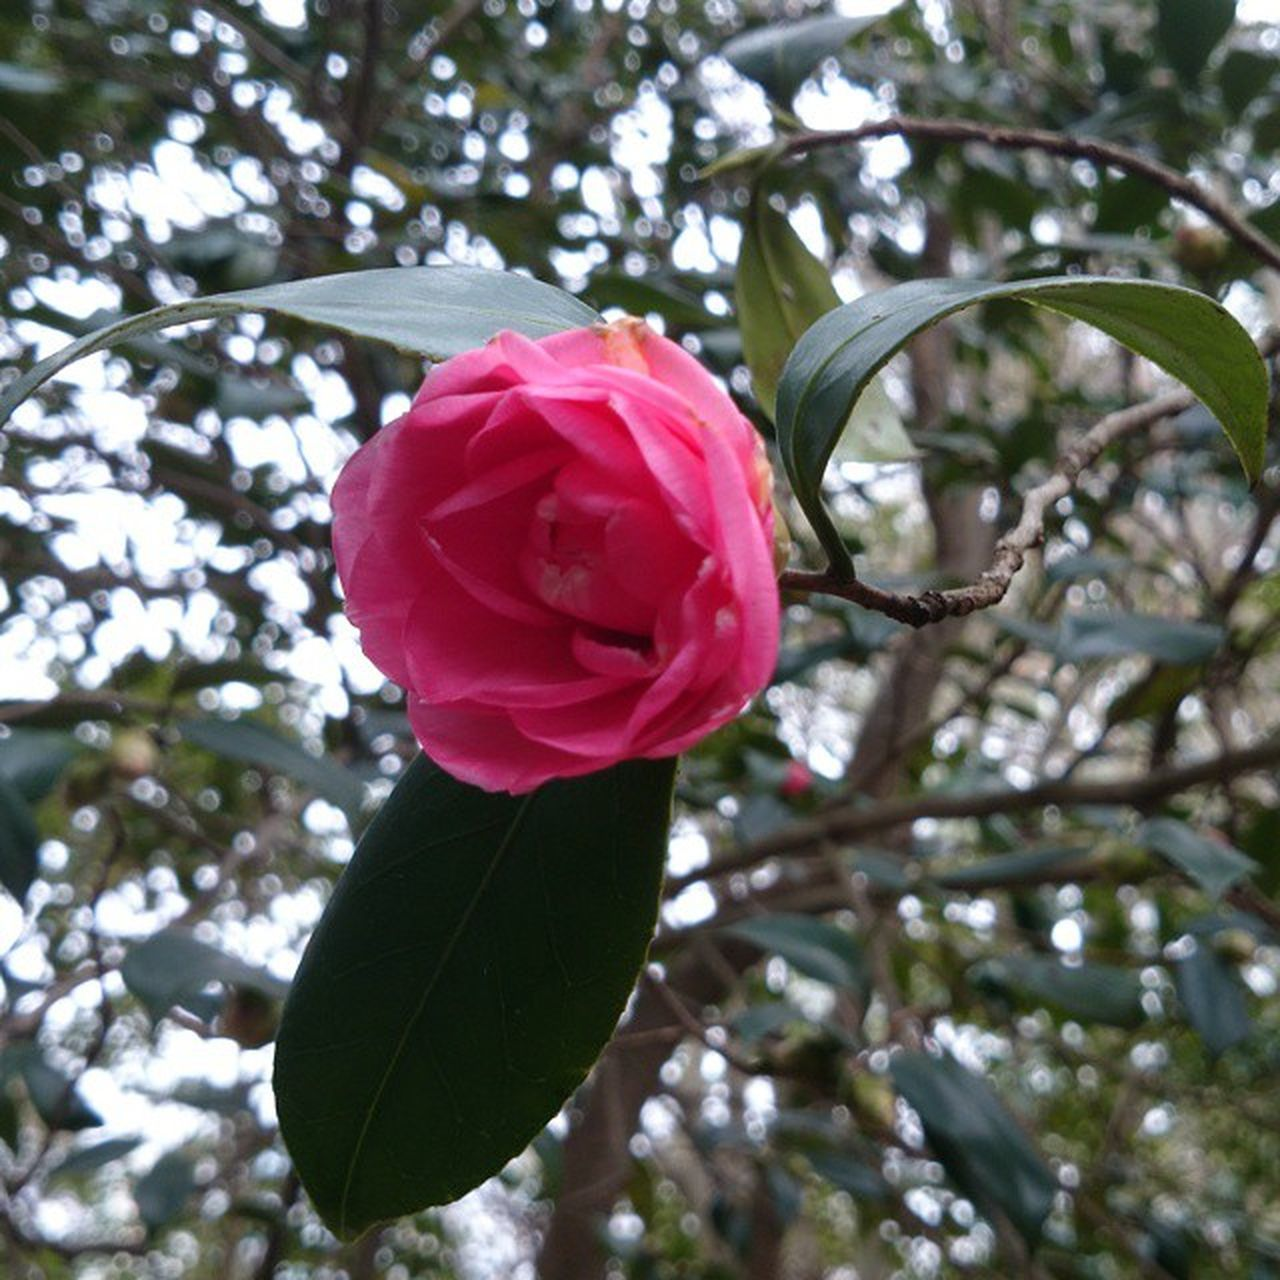 flower, petal, fragility, nature, growth, beauty in nature, freshness, rose - flower, flower head, blossom, leaf, plant, pink color, no people, springtime, outdoors, close-up, day, blooming, tree, branch